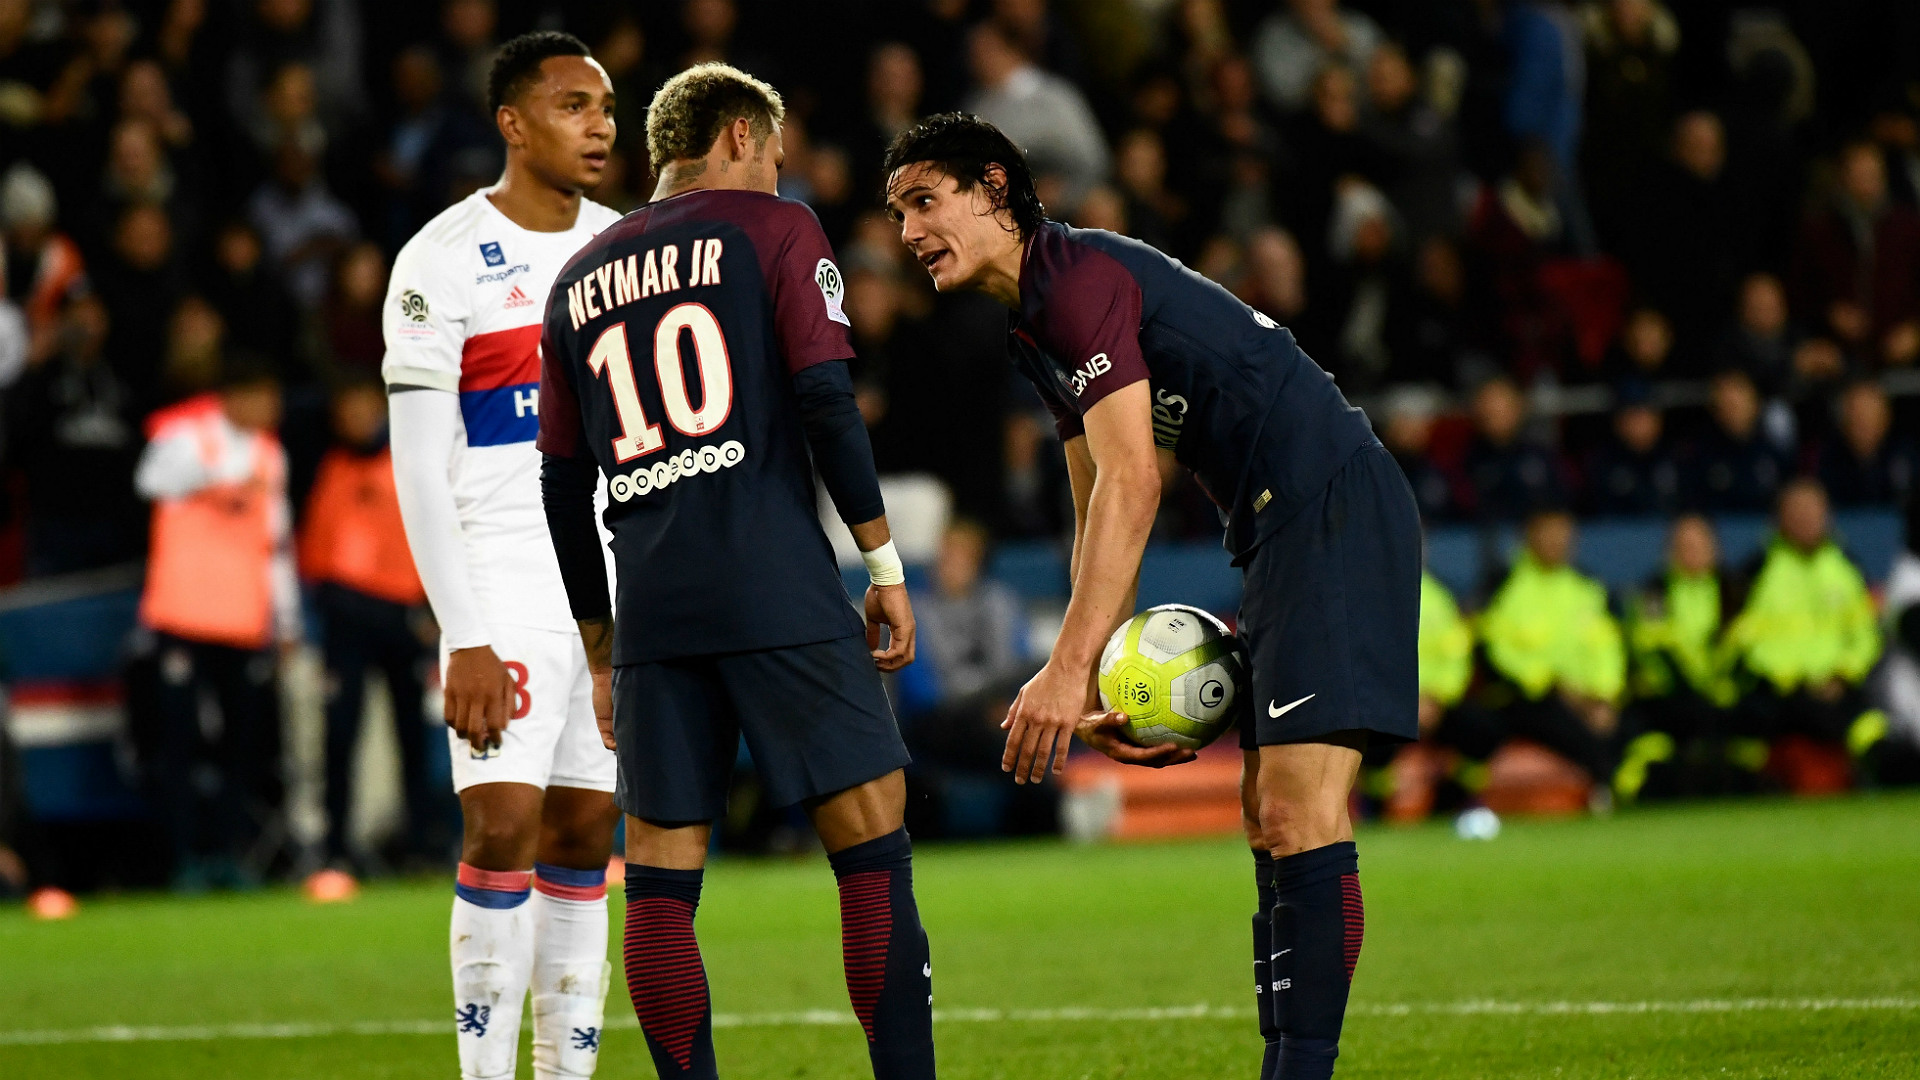 'Cristiano takes the penalties' - Ramos and Ronaldo will avoid Neymar-Cavani incident